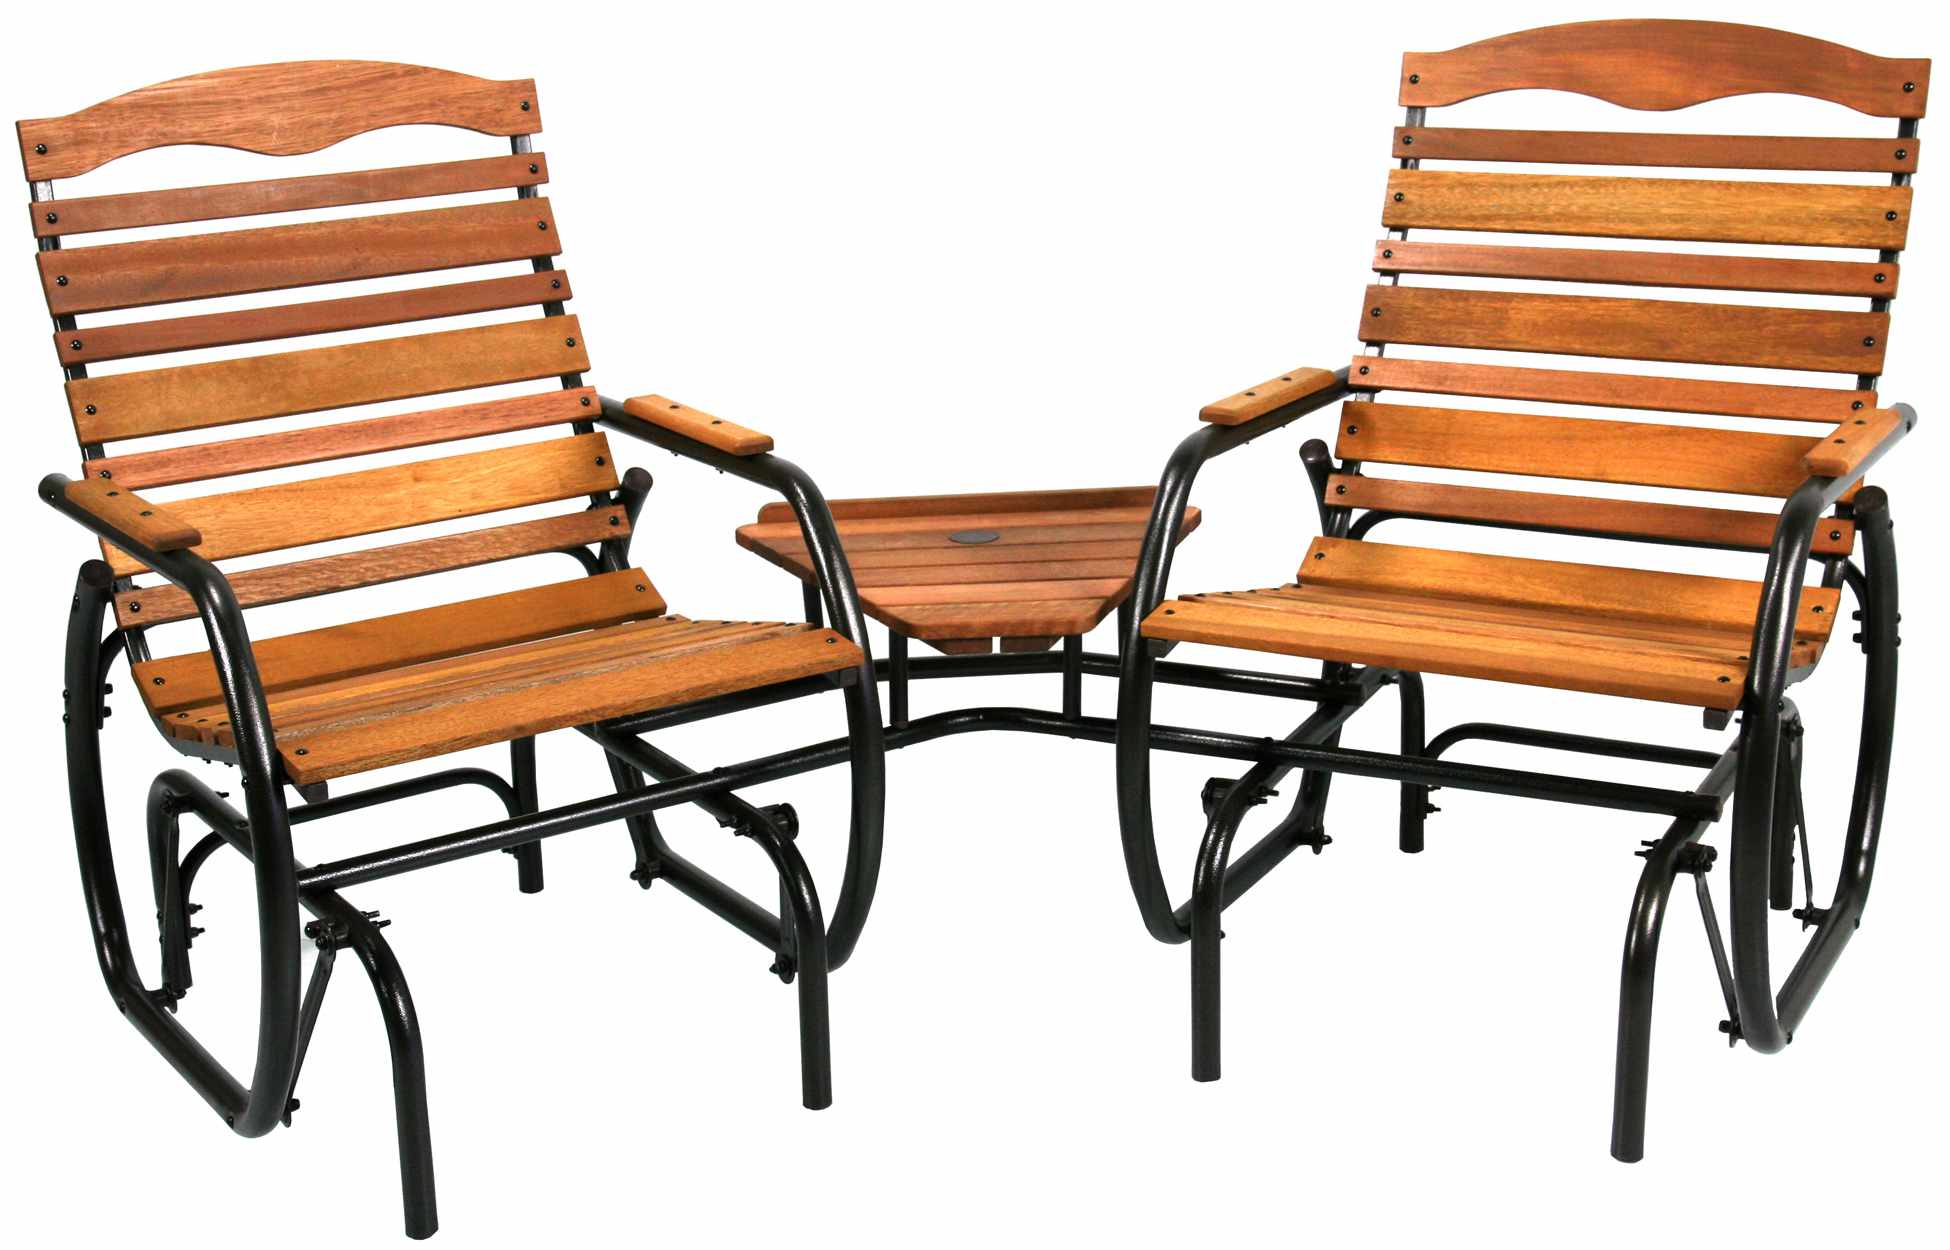 Jack Post Country Garden 2-Seat Wood Glider with Table